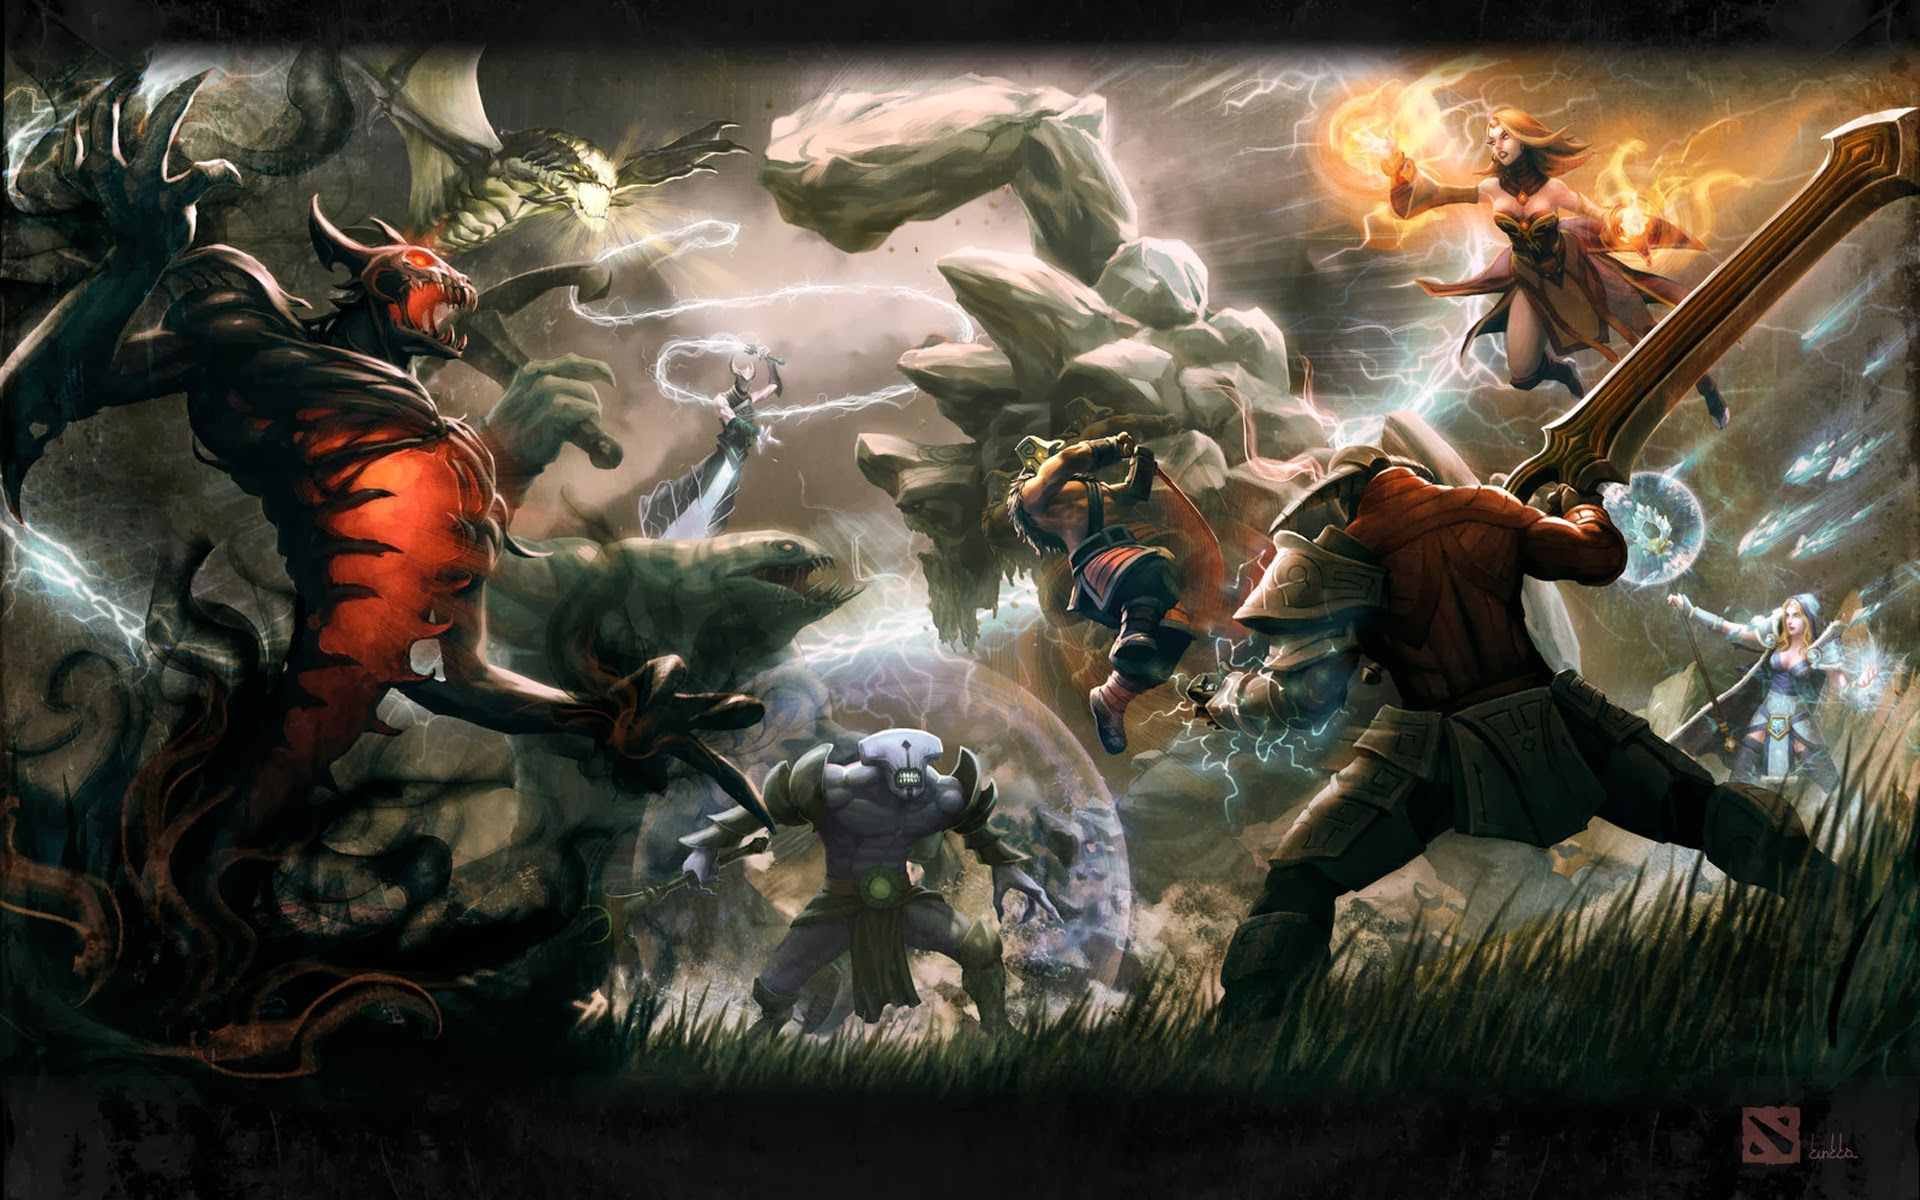 dota 2 wallpapers is free hd wallpaper games pinterest free